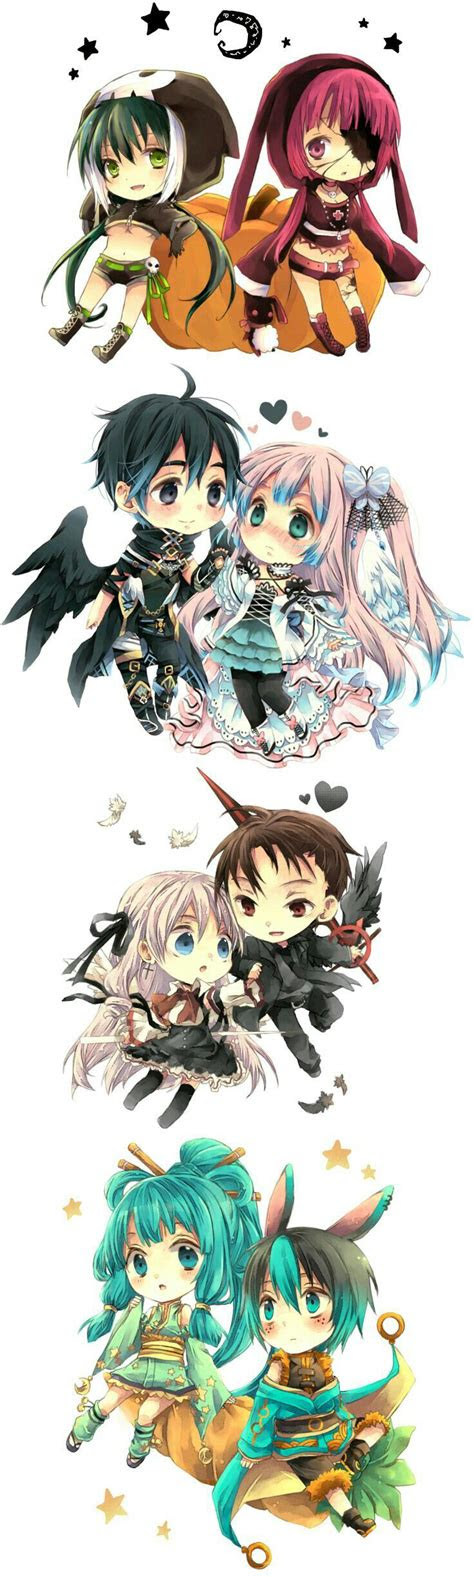 chibis characters images  pinterest kawaii